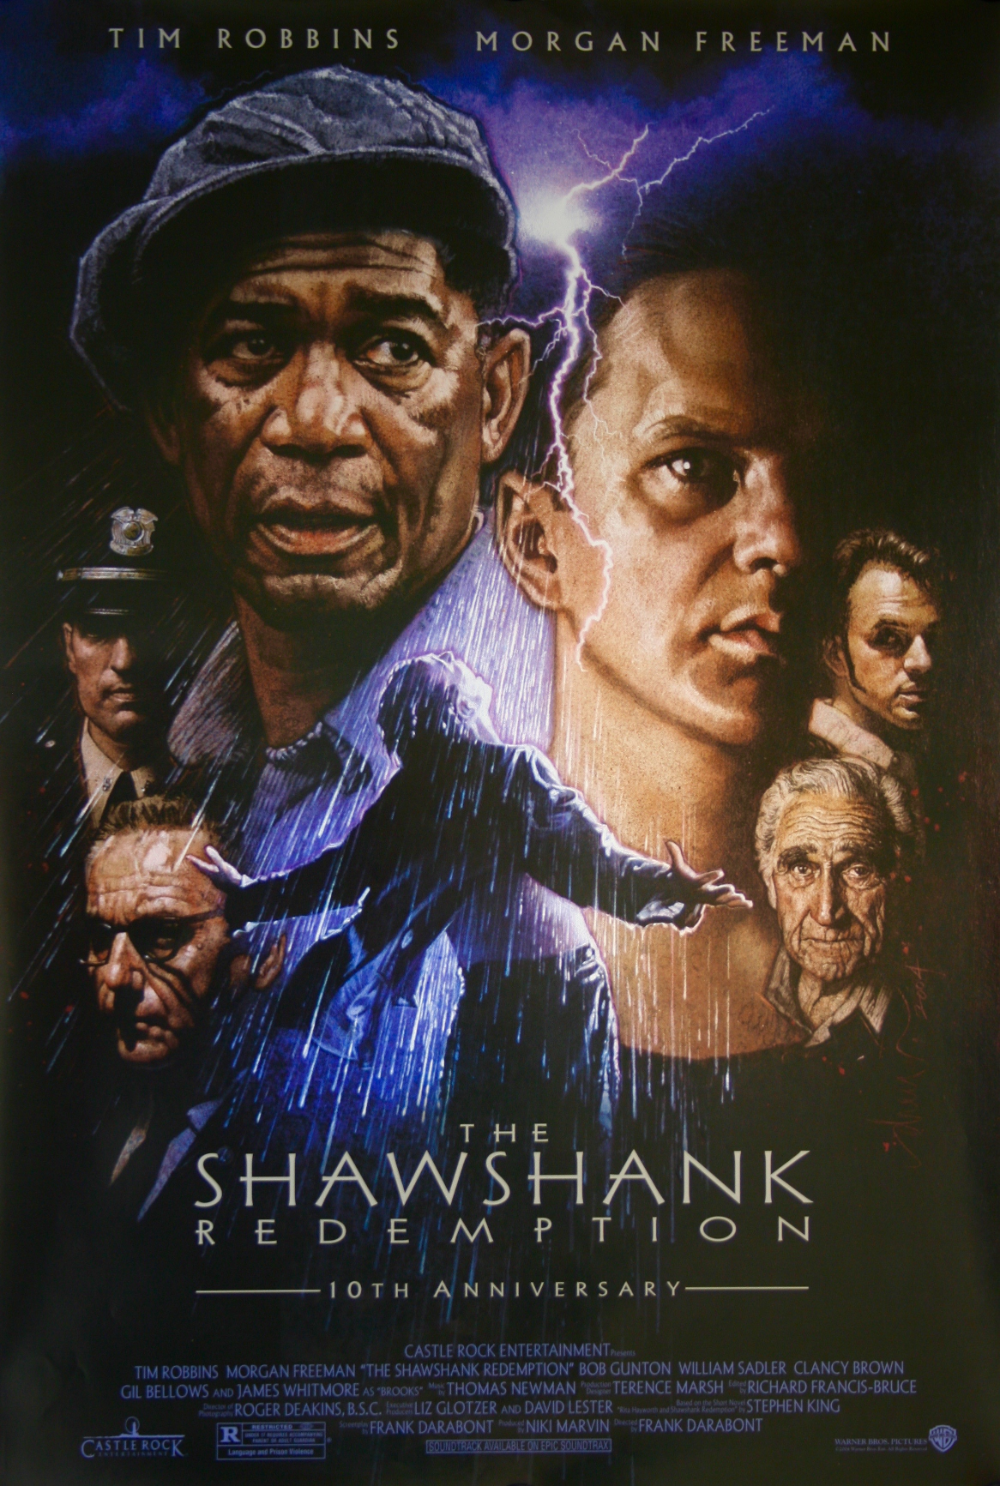 The Shawshank Redemption Movie Poster Rare Poster In 2020 The Shawshank Redemption Easy Movies Movie Posters Vintage